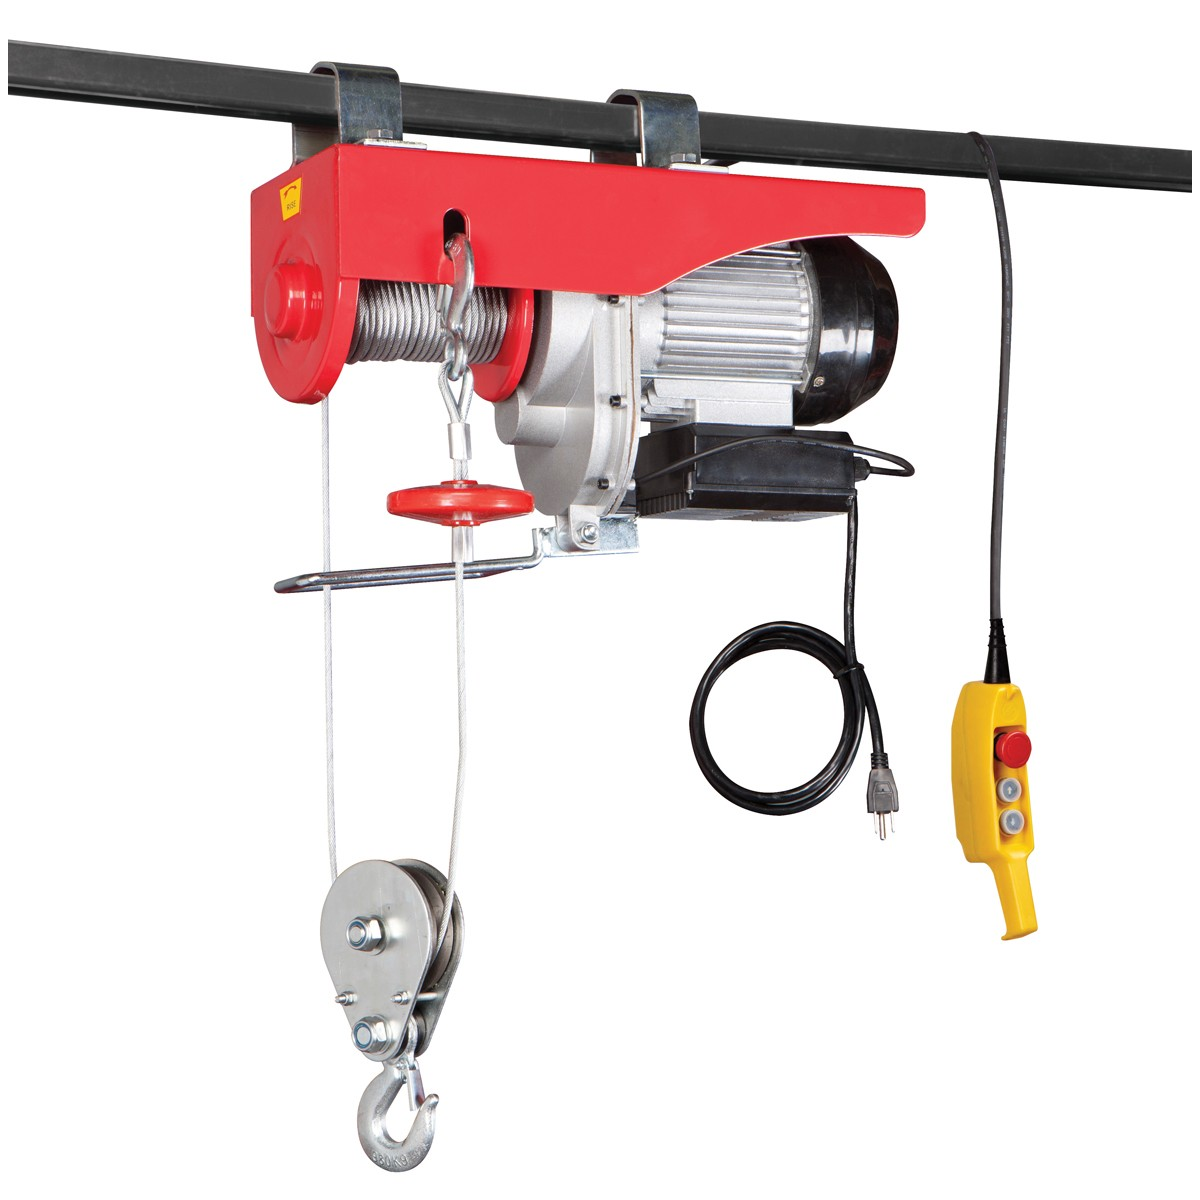 20 Kg Electric Hoist, 20 Kg Electric Hoist Suppliers and ... Wiring Diagram Volt Winch Harbor Freight on undercoating gun harbor freight, toe kick saw harbor freight, jackhammer harbor freight, brake line flaring tool harbor freight, cable hoist harbor freight, impact screwdriver harbor freight, metal trailer harbor freight, u-joint puller harbor freight, electric jack hammer harbor freight, pliers harbor freight, drills at harbor freight, 10 saw blades harbor freight, powerwinch harbor freight, phnumatic jack harbor freight, mini circular saws harbor freight,